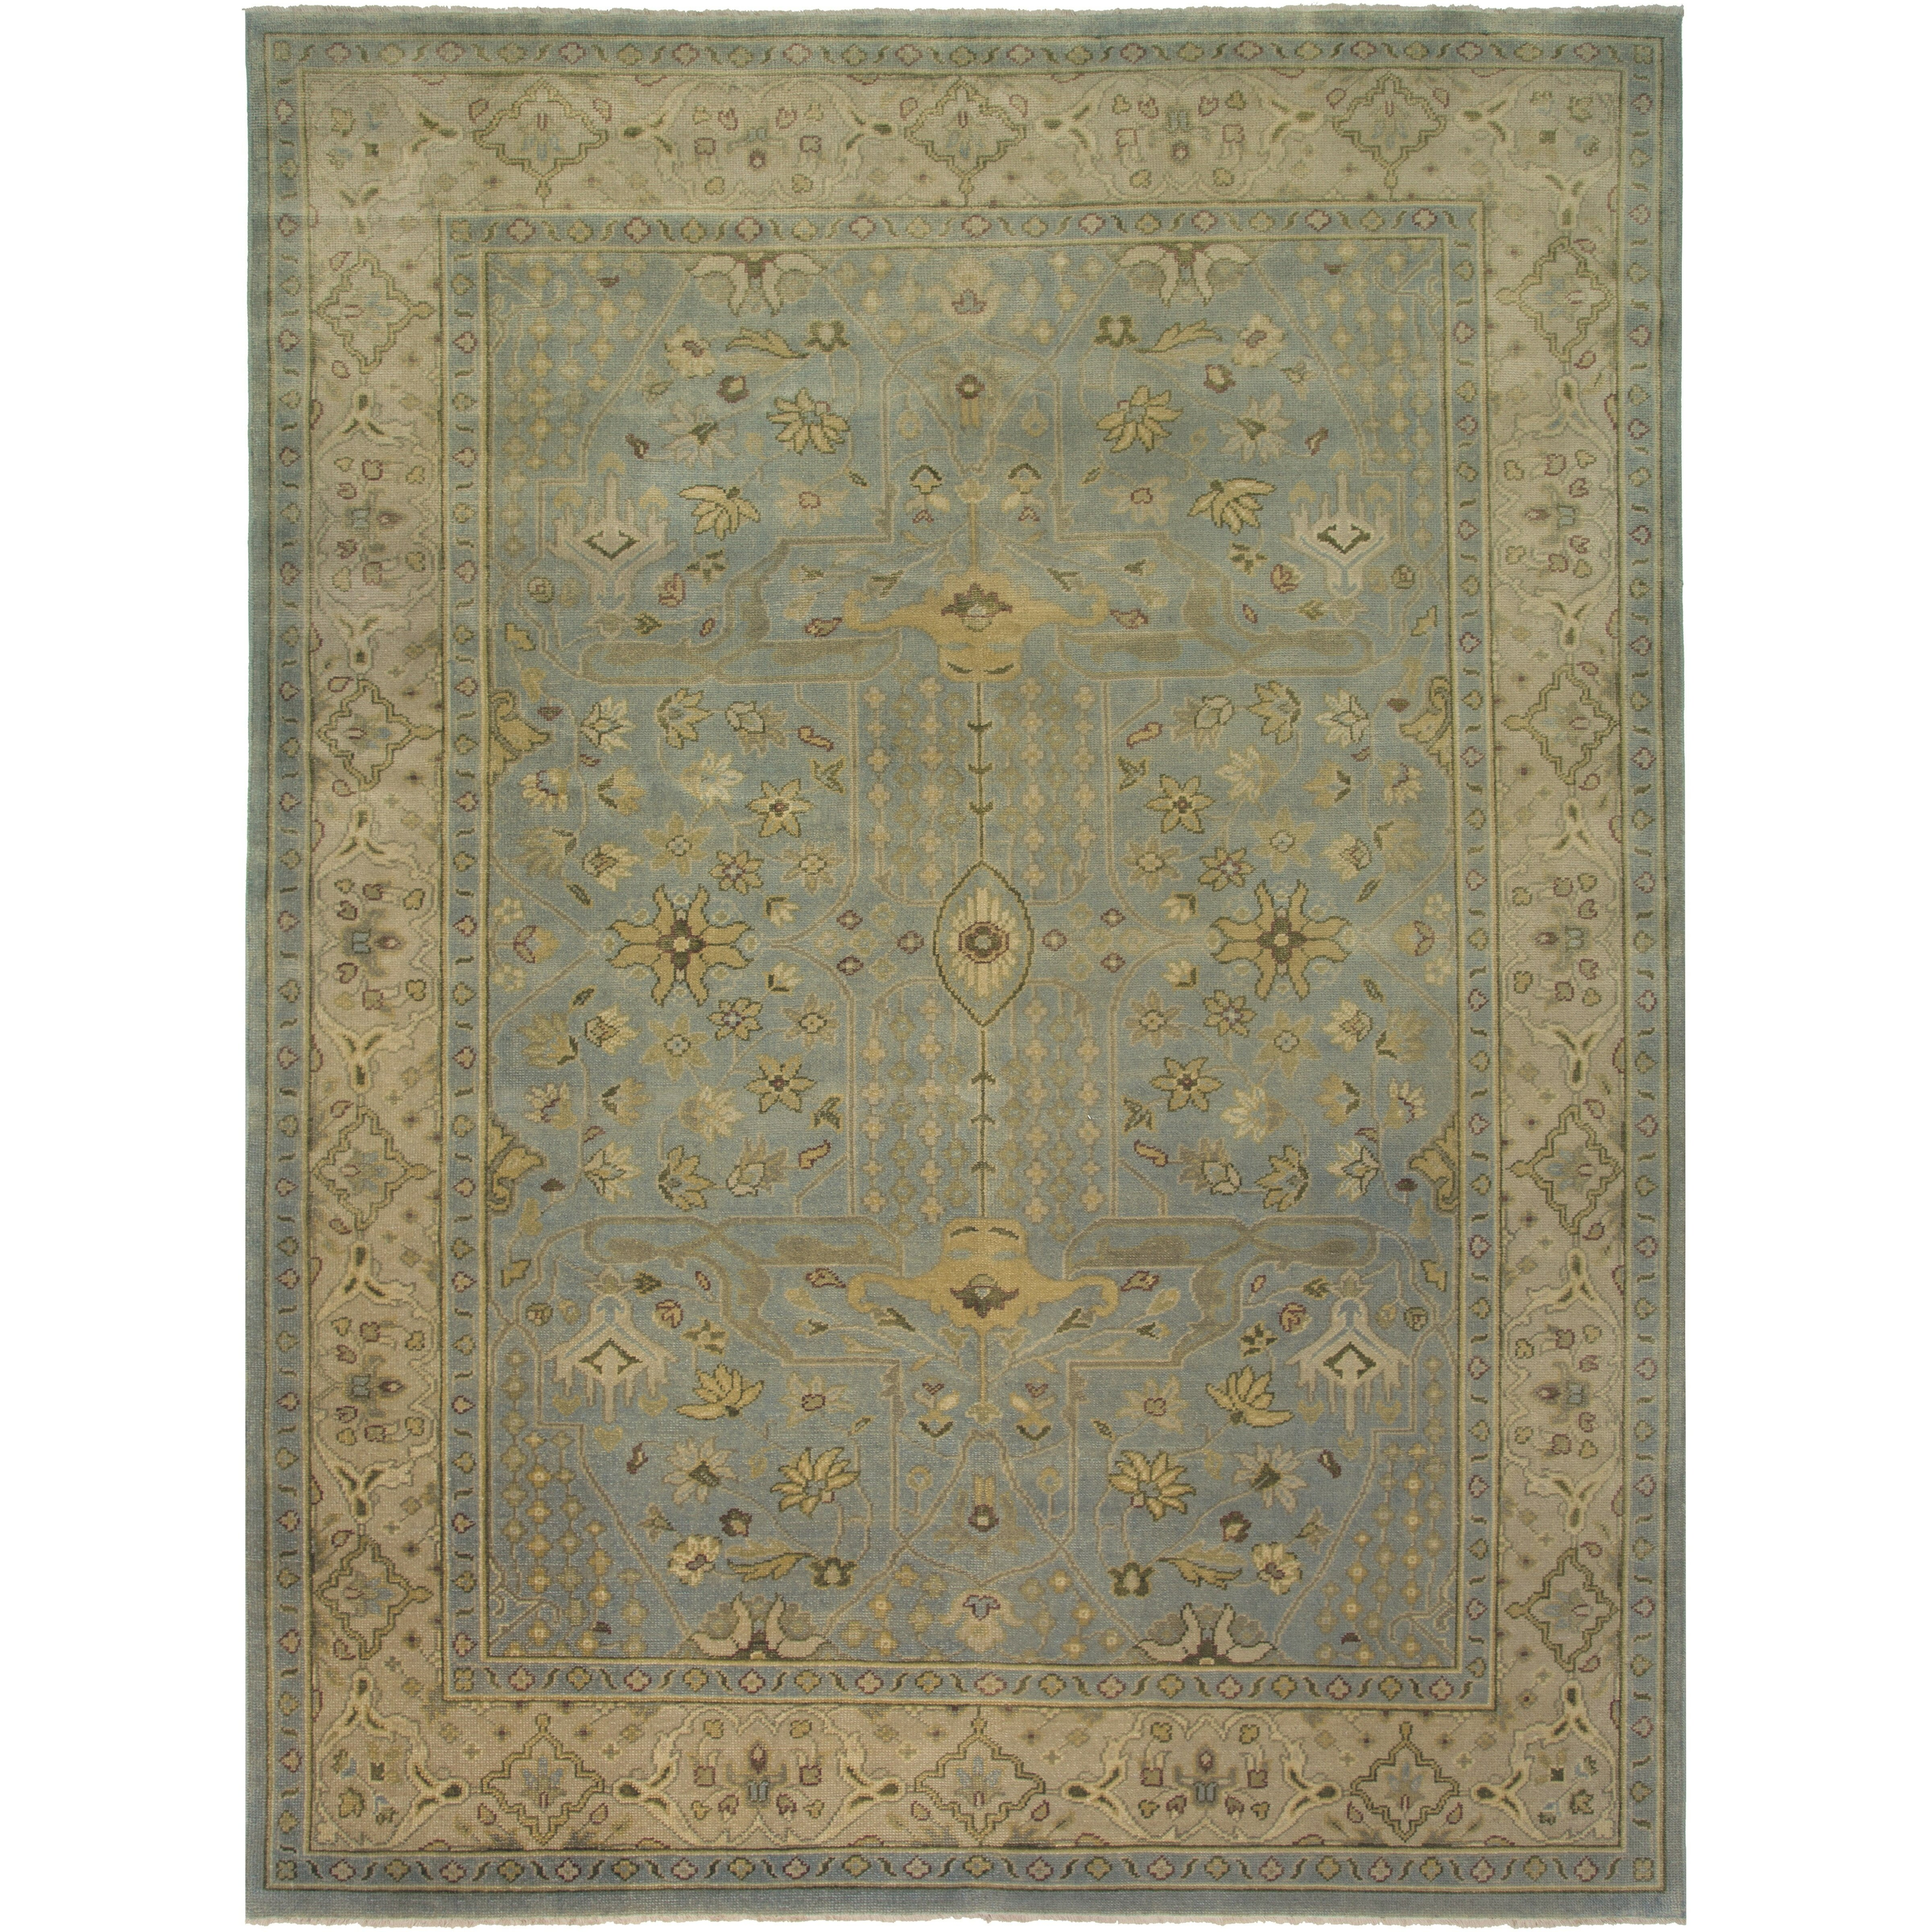 Stella Collection Hand Tufted Area Rug In Beige Light: AMER Rugs Sivas Design Light Blue Hand-Knotted Area Rug